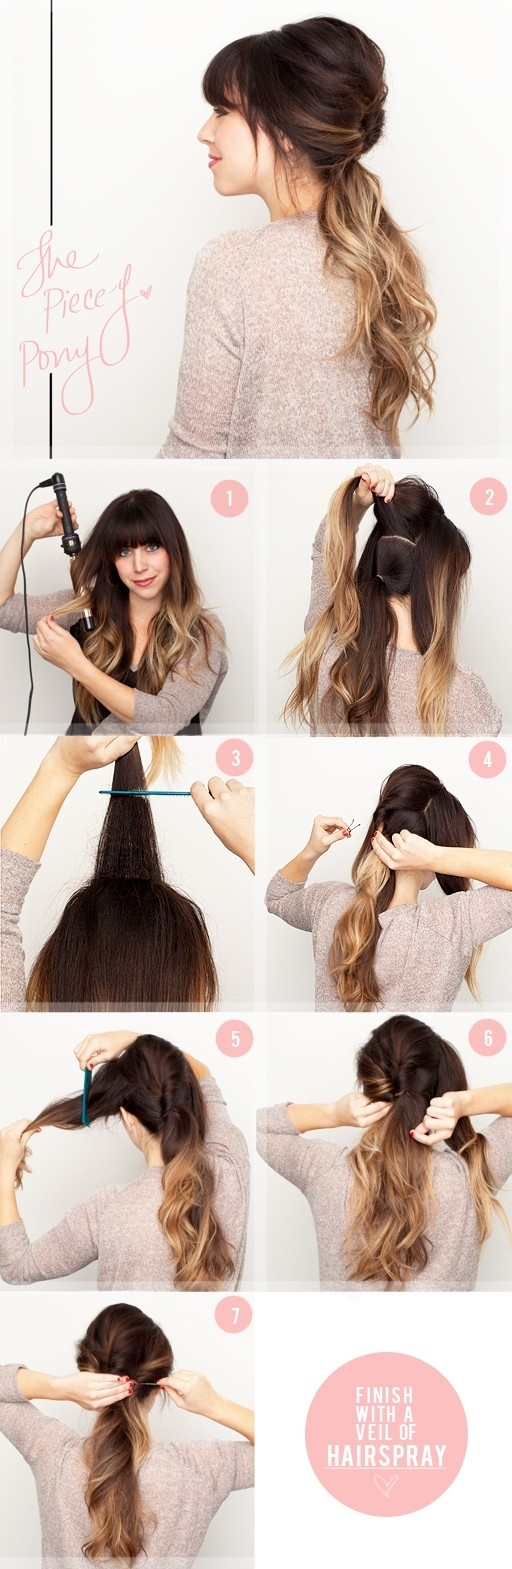 Tutorial On How To Style Your Hair _ For Summer 2017 3